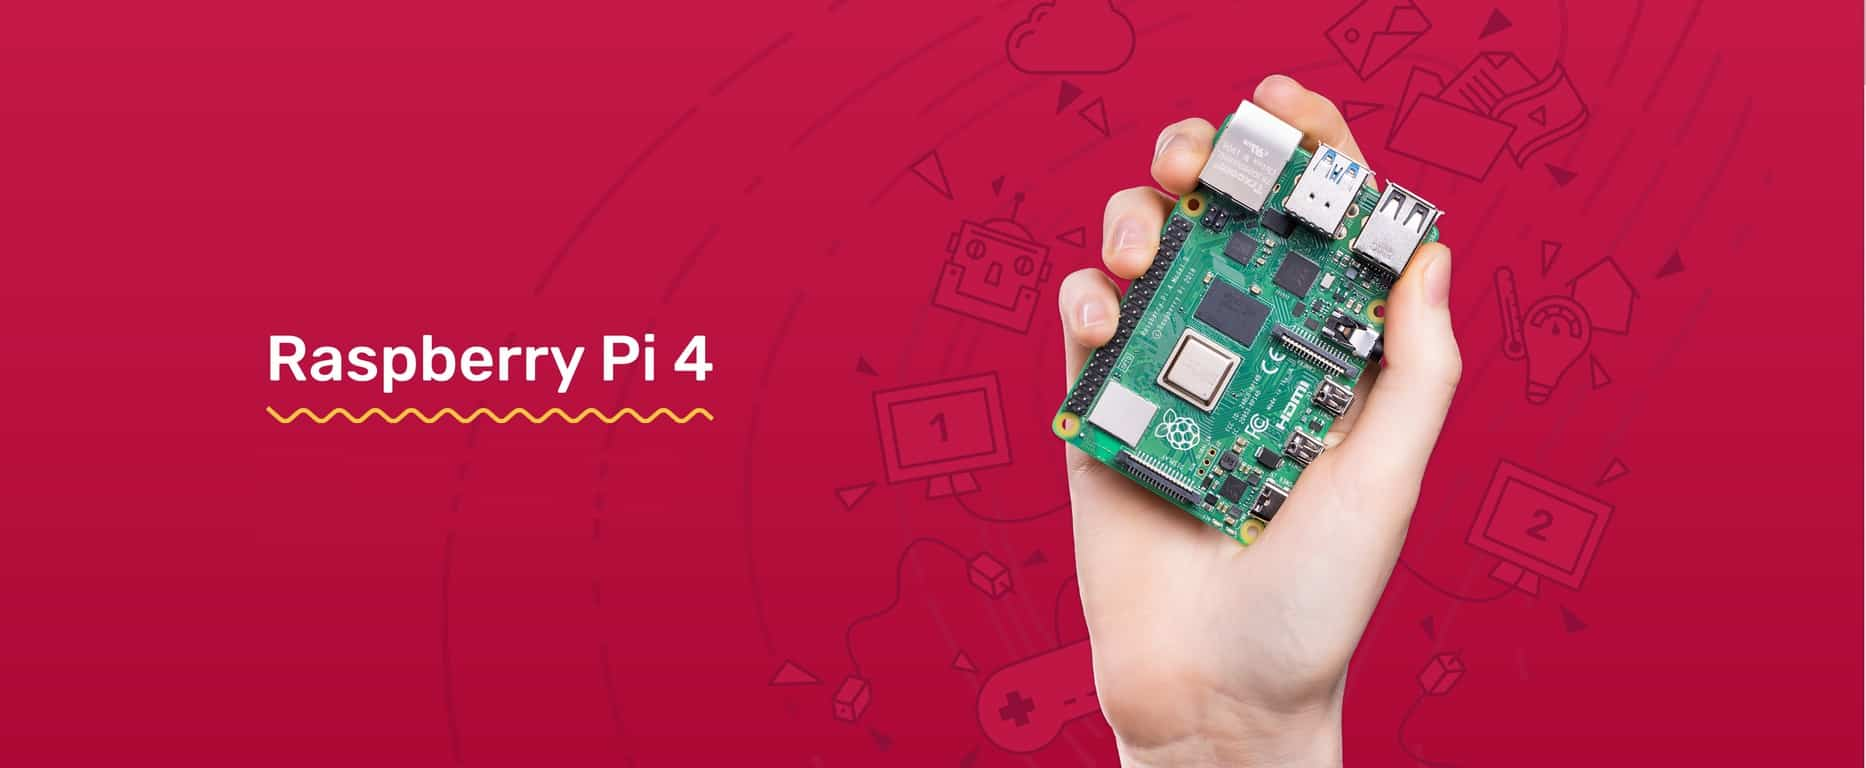 Raspberry Pi 4 released with upgraded specs, starts at $35